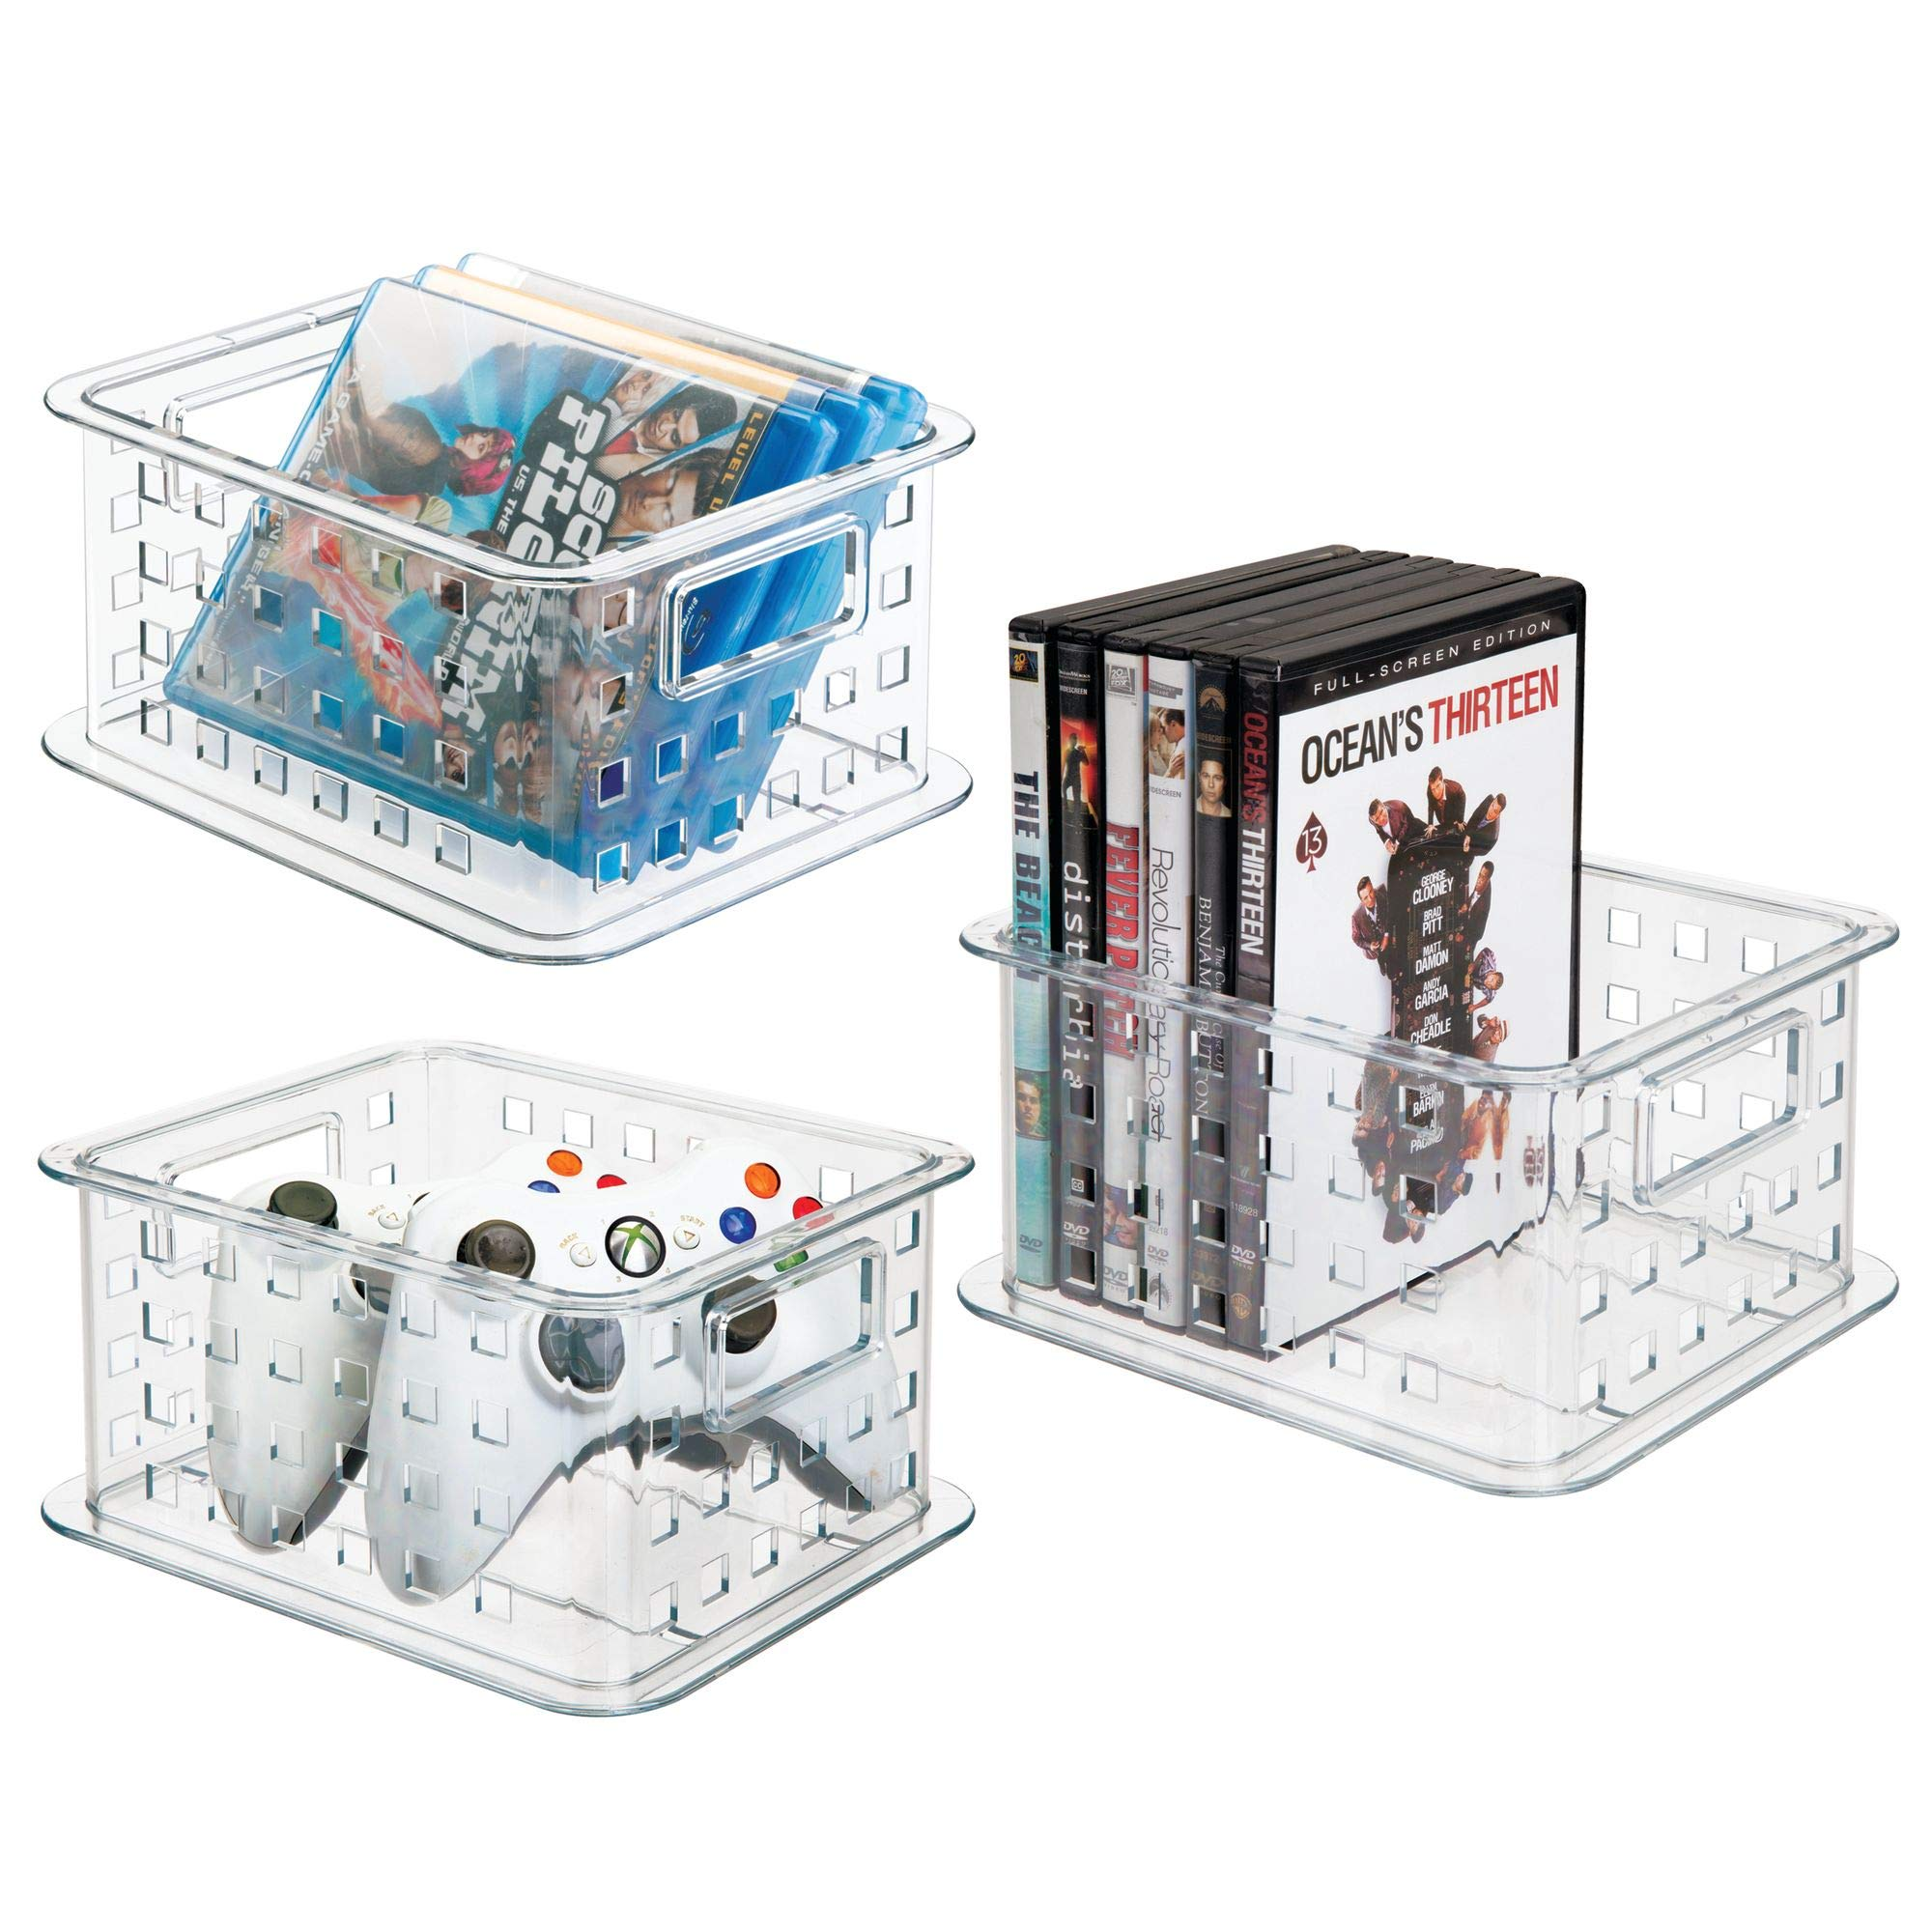 mDesign Plastic Stackable Household Storage Organizer Container Bin with Handles - for Media Consoles, Closets, Cabinets - Holds DVD's, Blu Ray, Video Games, Gaming Accessories - 3 Pack, Clear